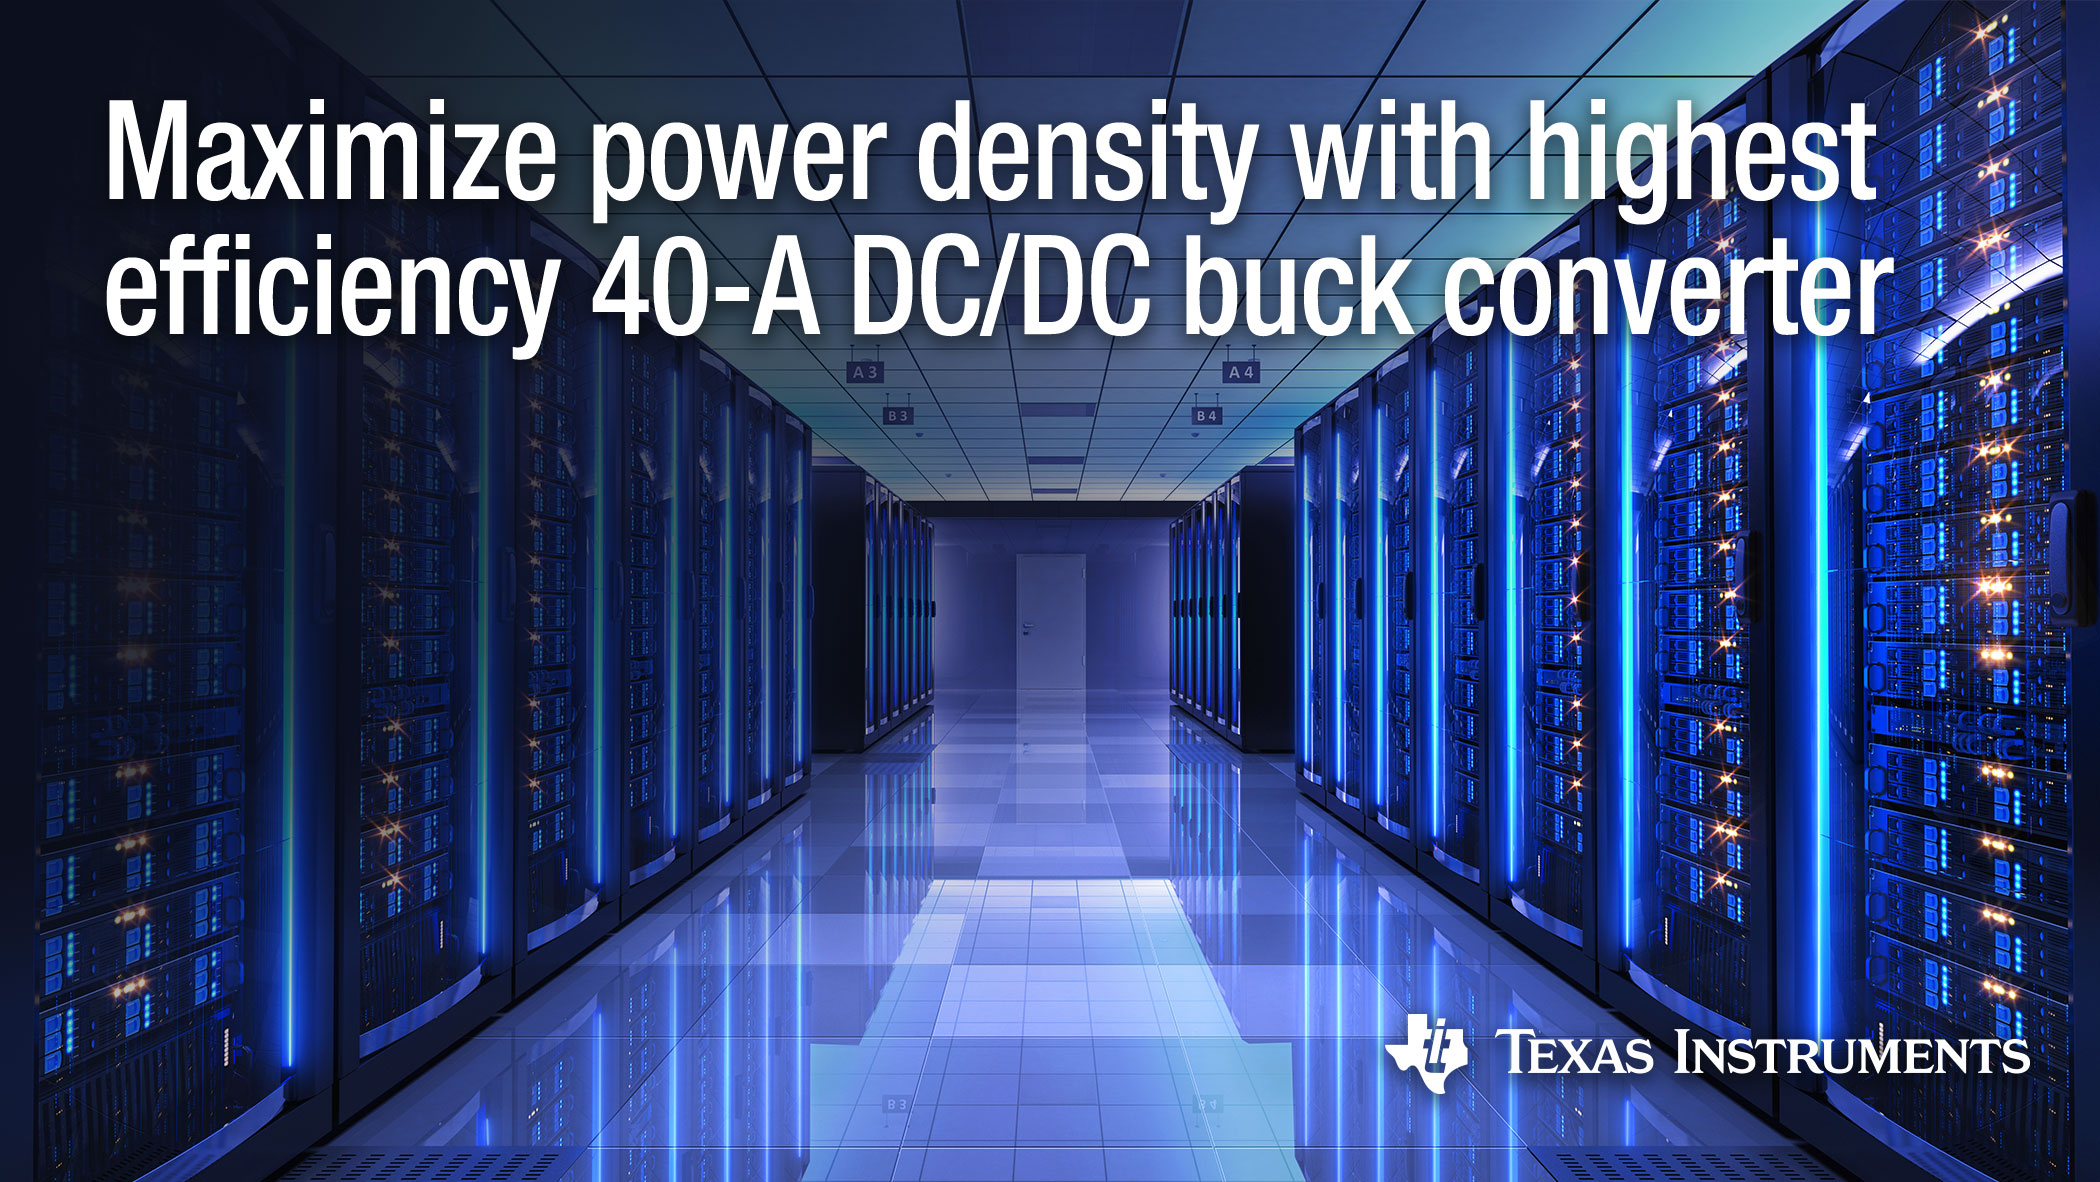 Stackable DC/DC Buck Converter Maximizes Power Density